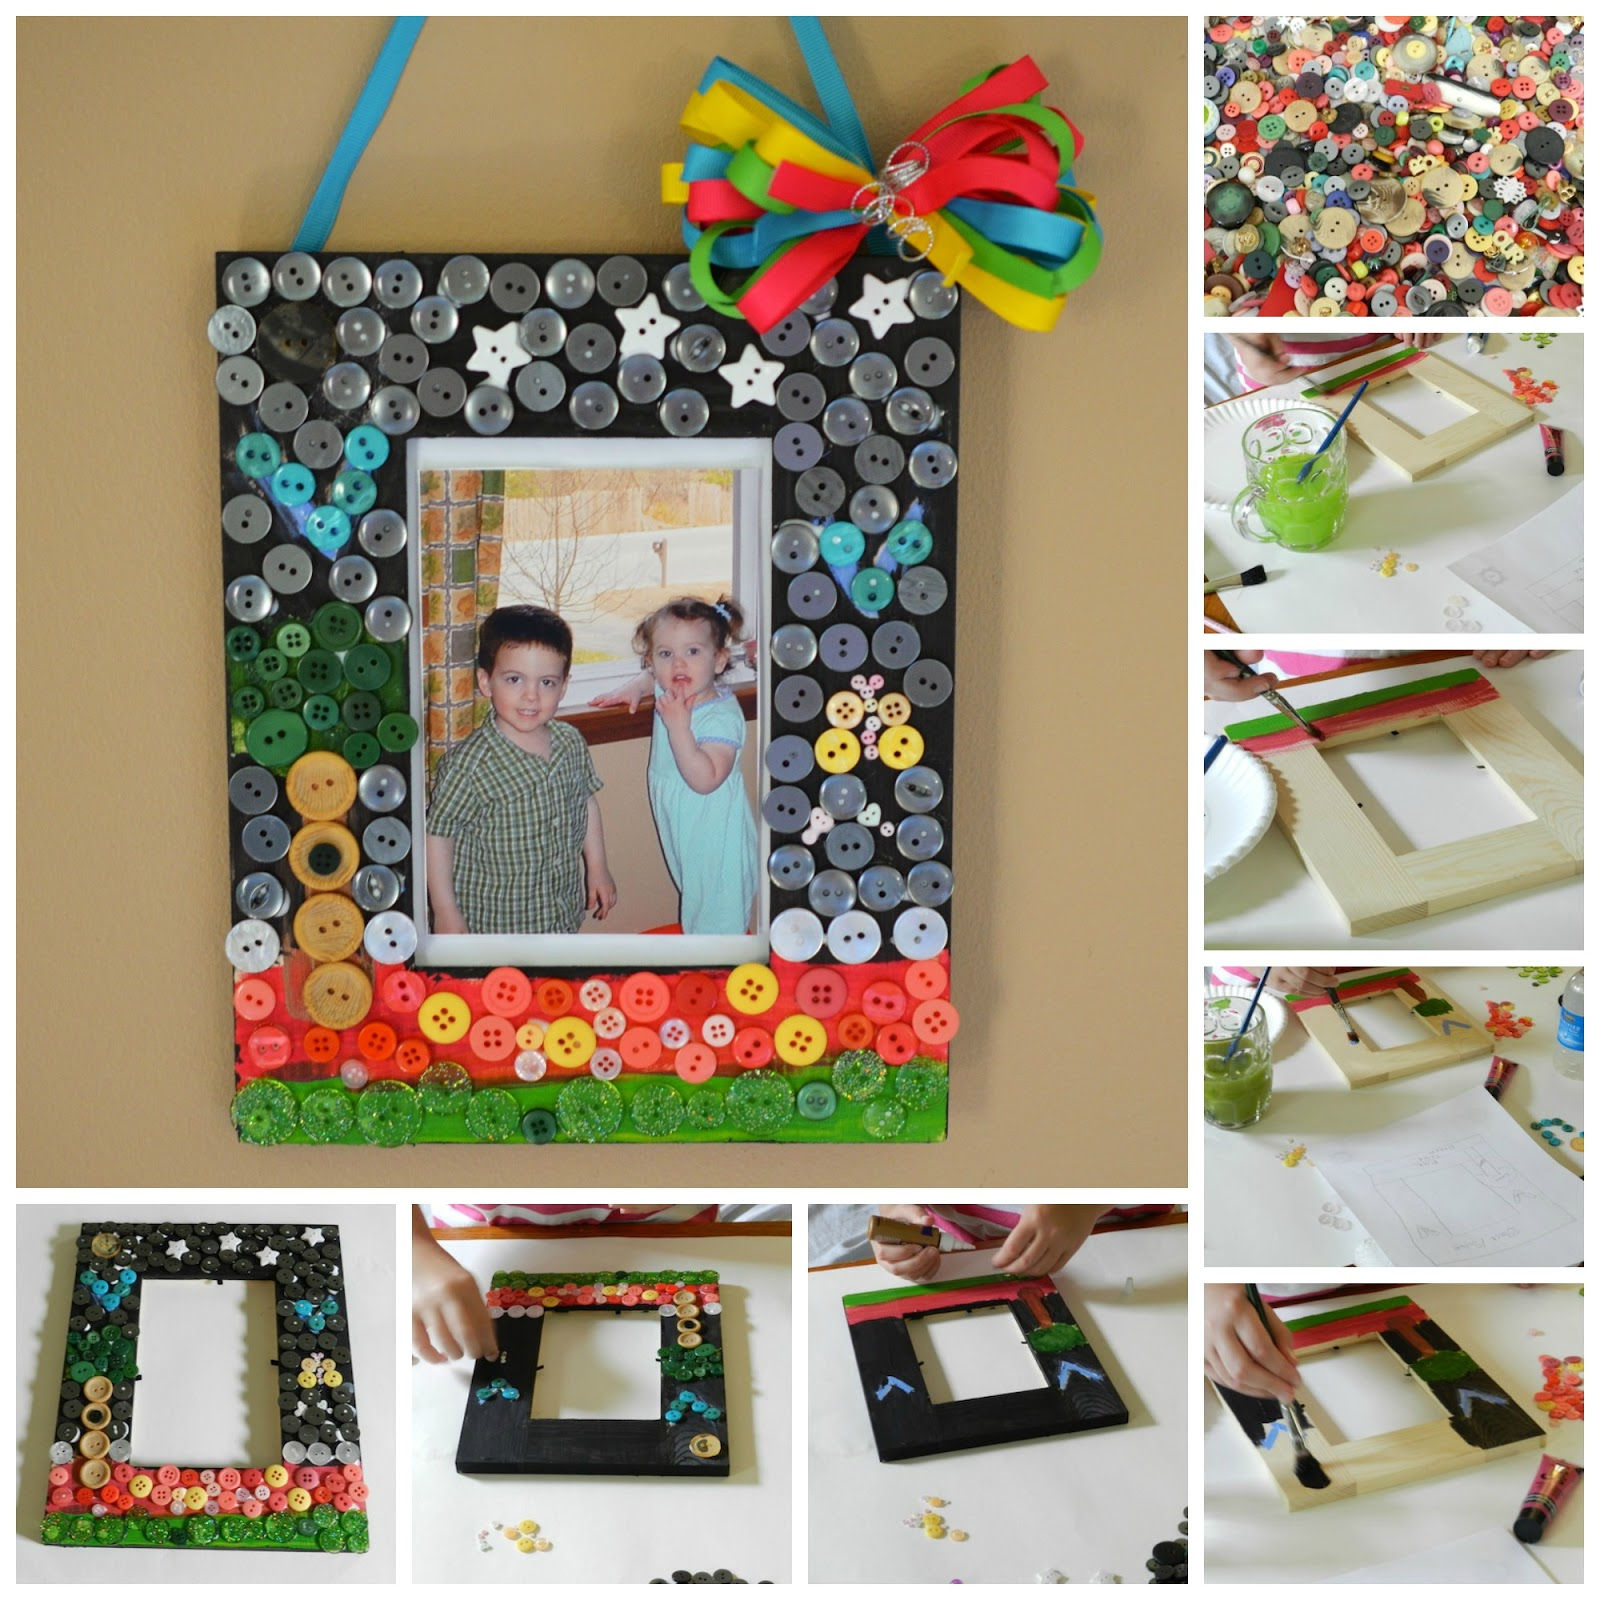 Sewing and Crafting with Sarah: Summer Craft for Kids DIY Button Frame